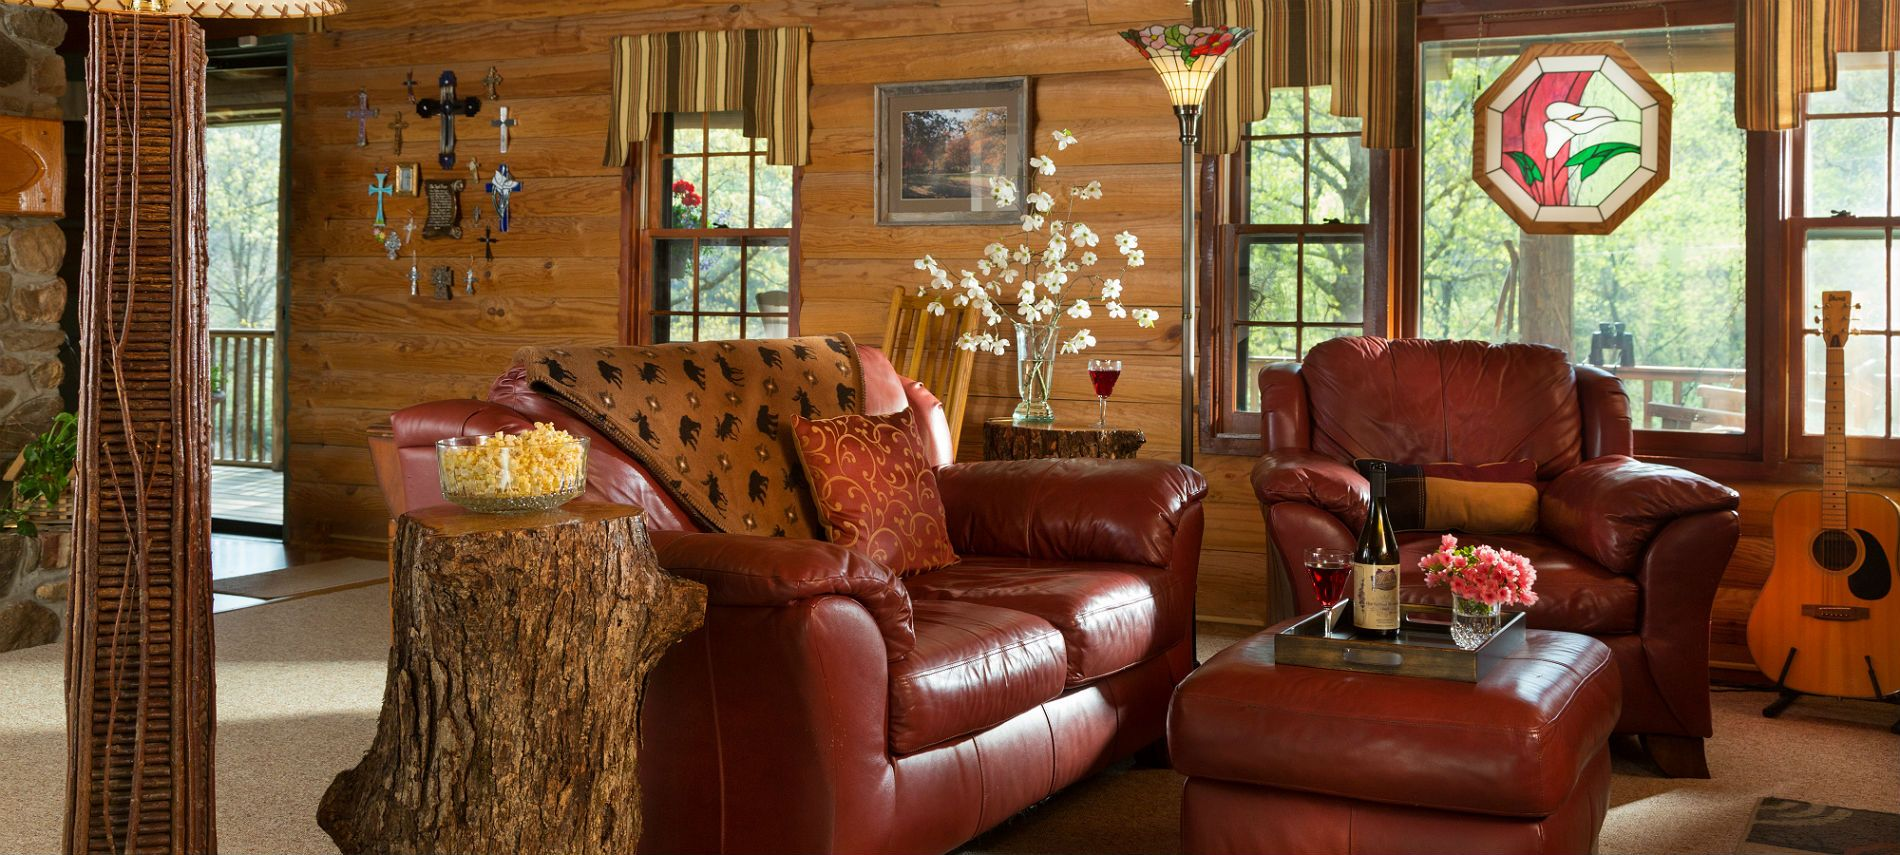 Leather sofa a side chair in a living room with log walls, rustic decor, stained glass floor lamp and window accent.